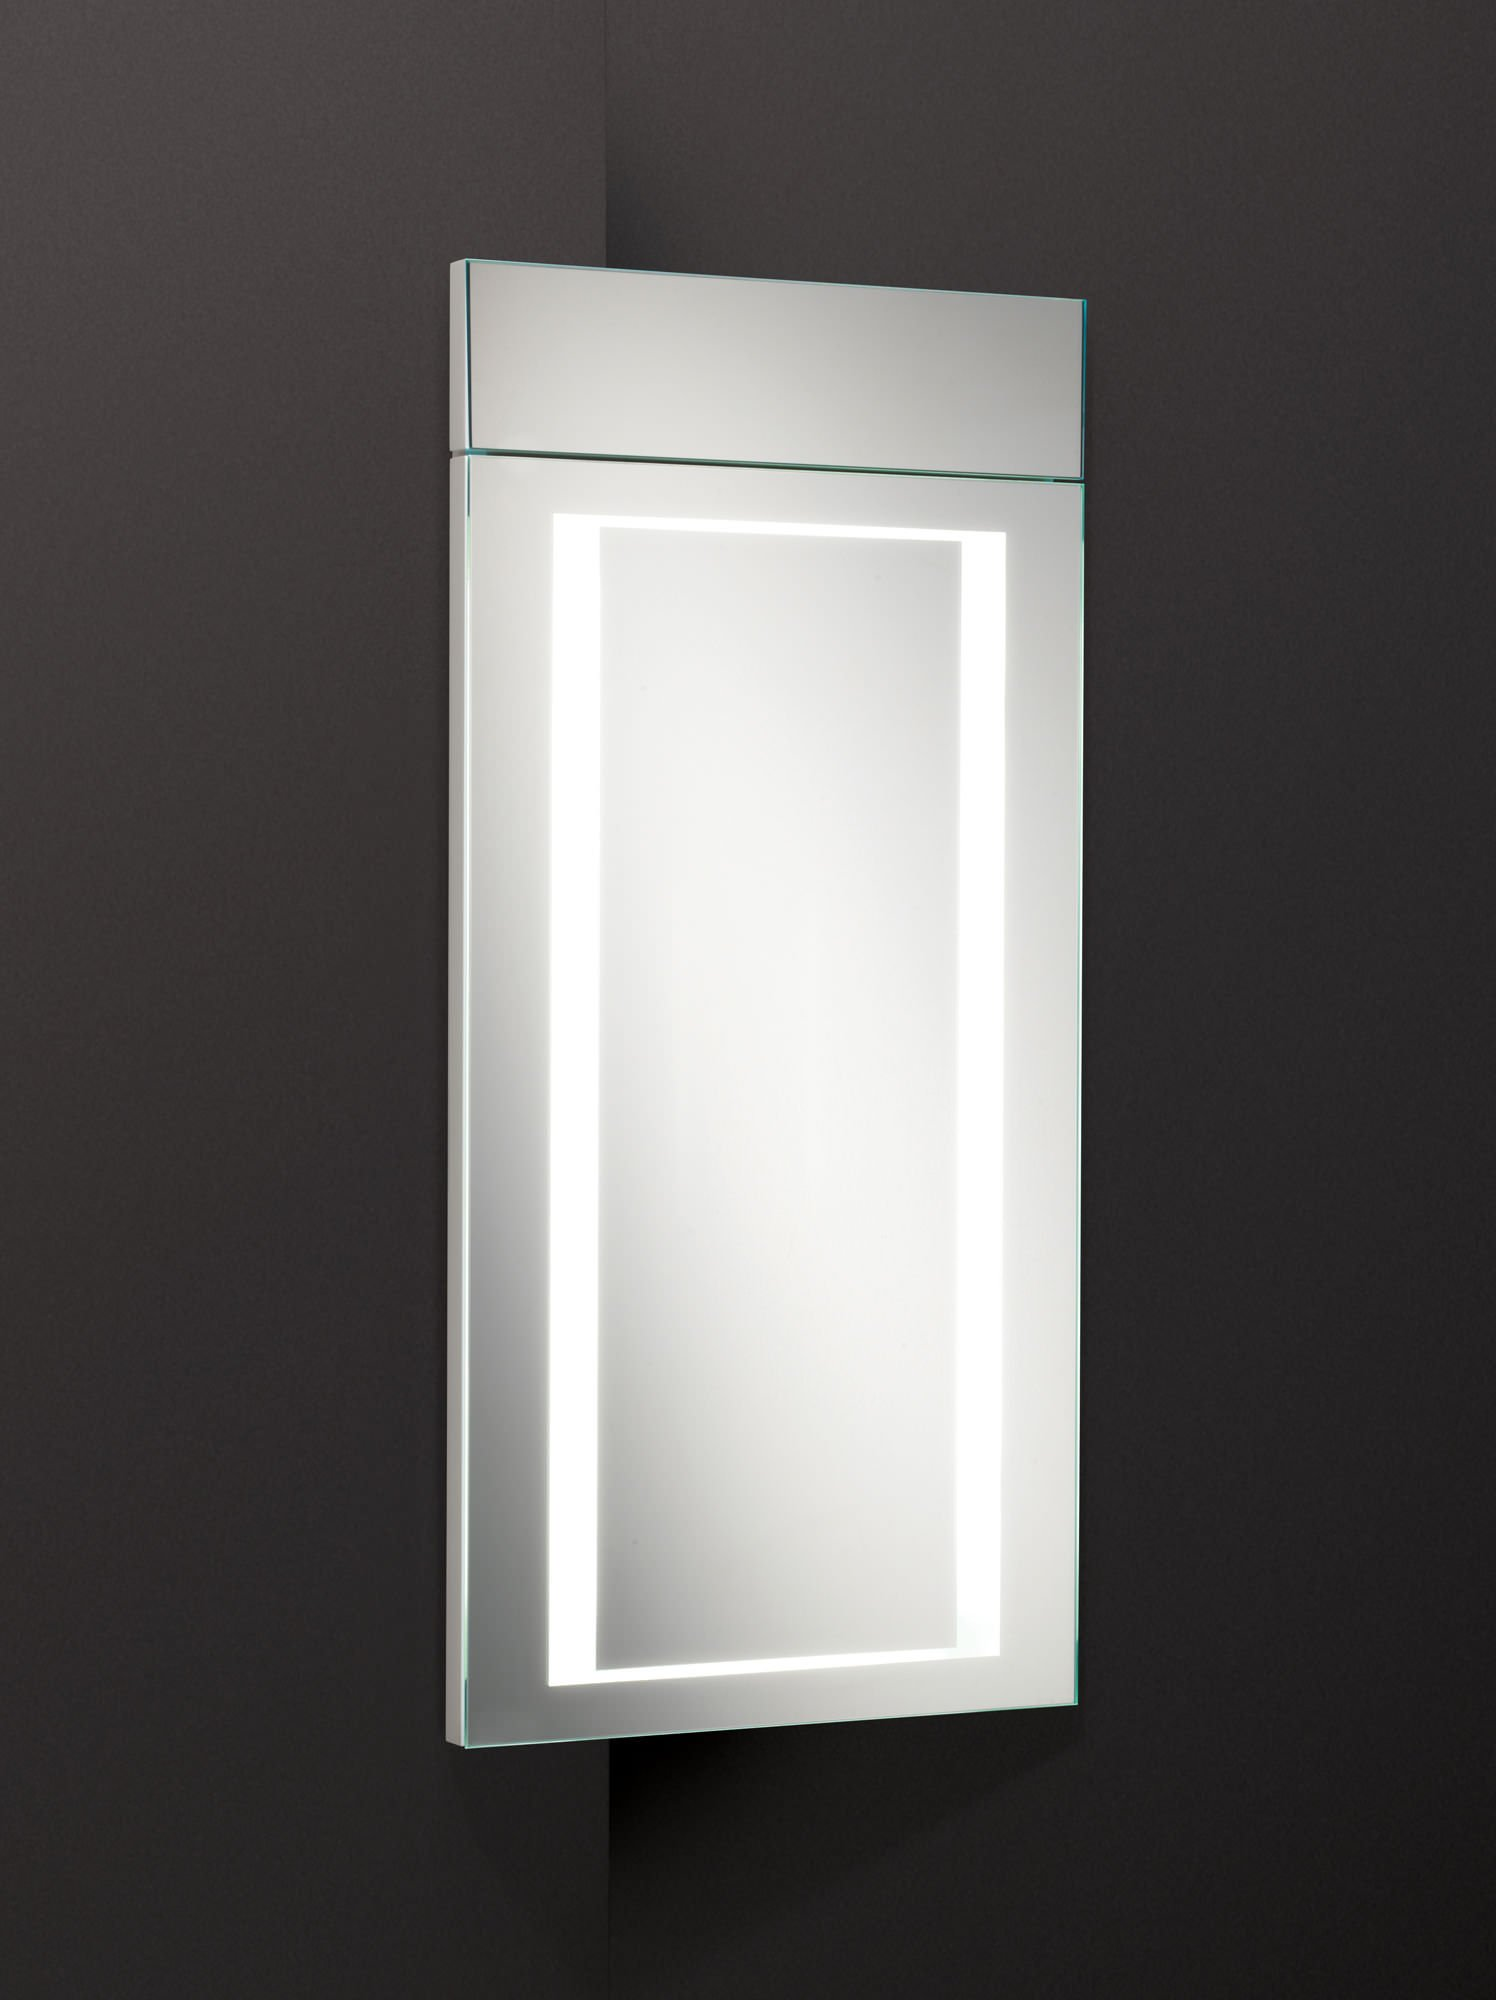 HIB Minnesota LED Illuminated Corner Bathroom Cabinet 300 x 630mm